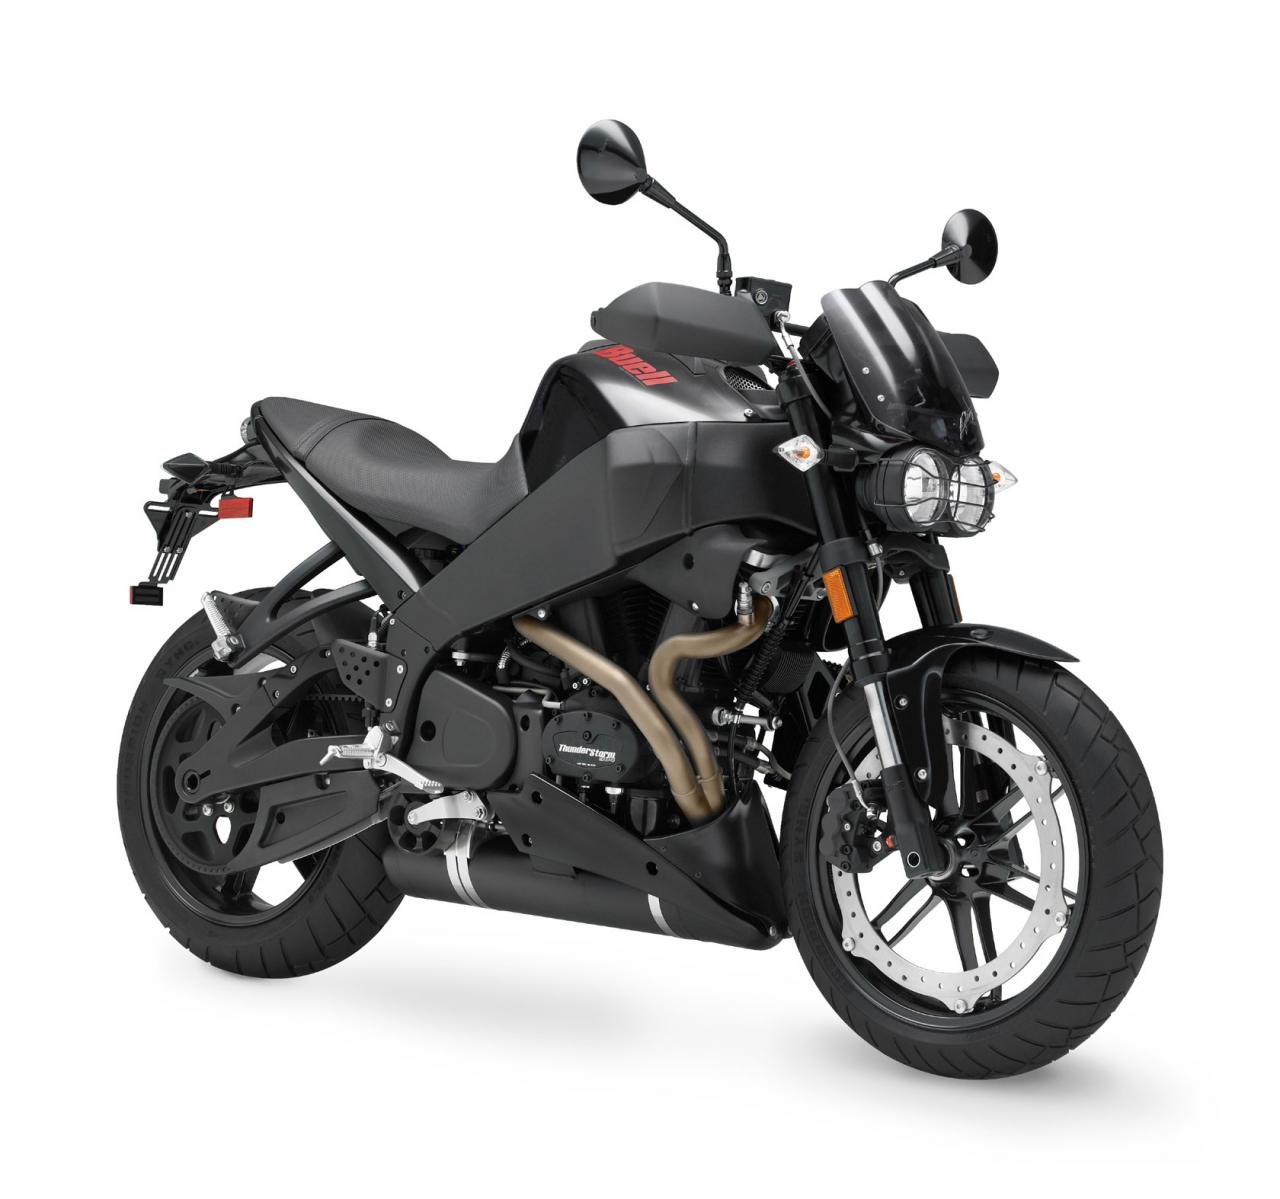 Motorcycle Pictures: Buell Lightning CityX XB9SX 2010